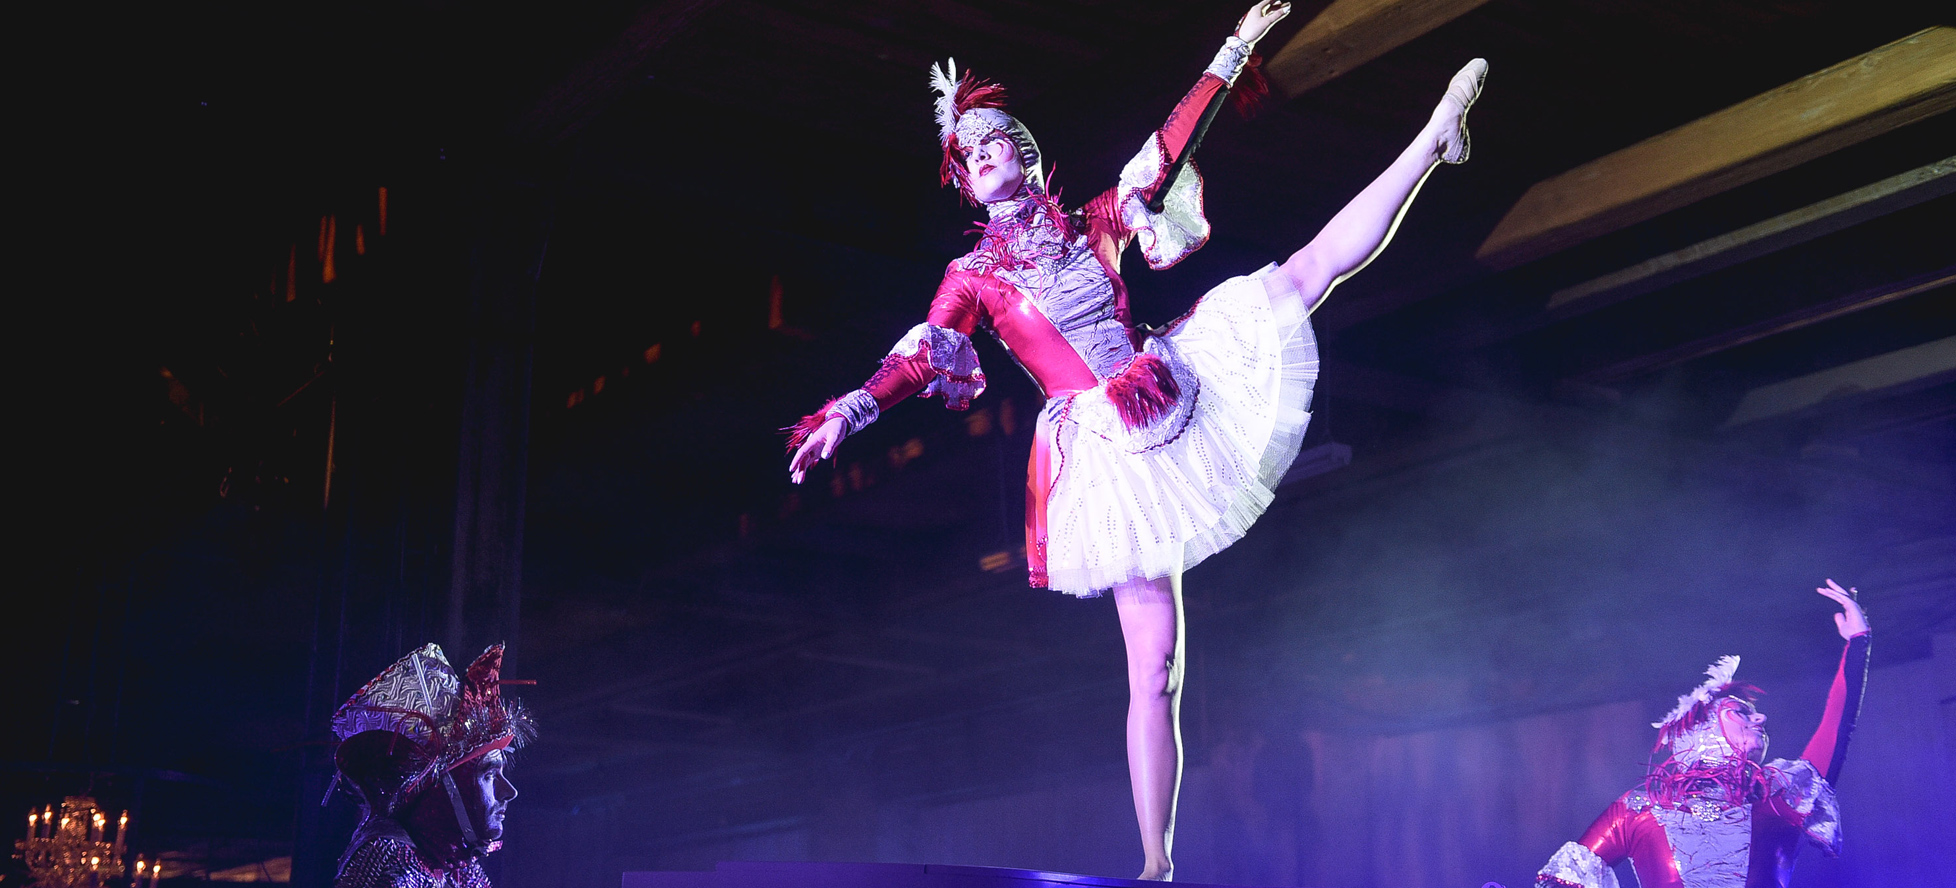 Dancer in costume with leg in the air